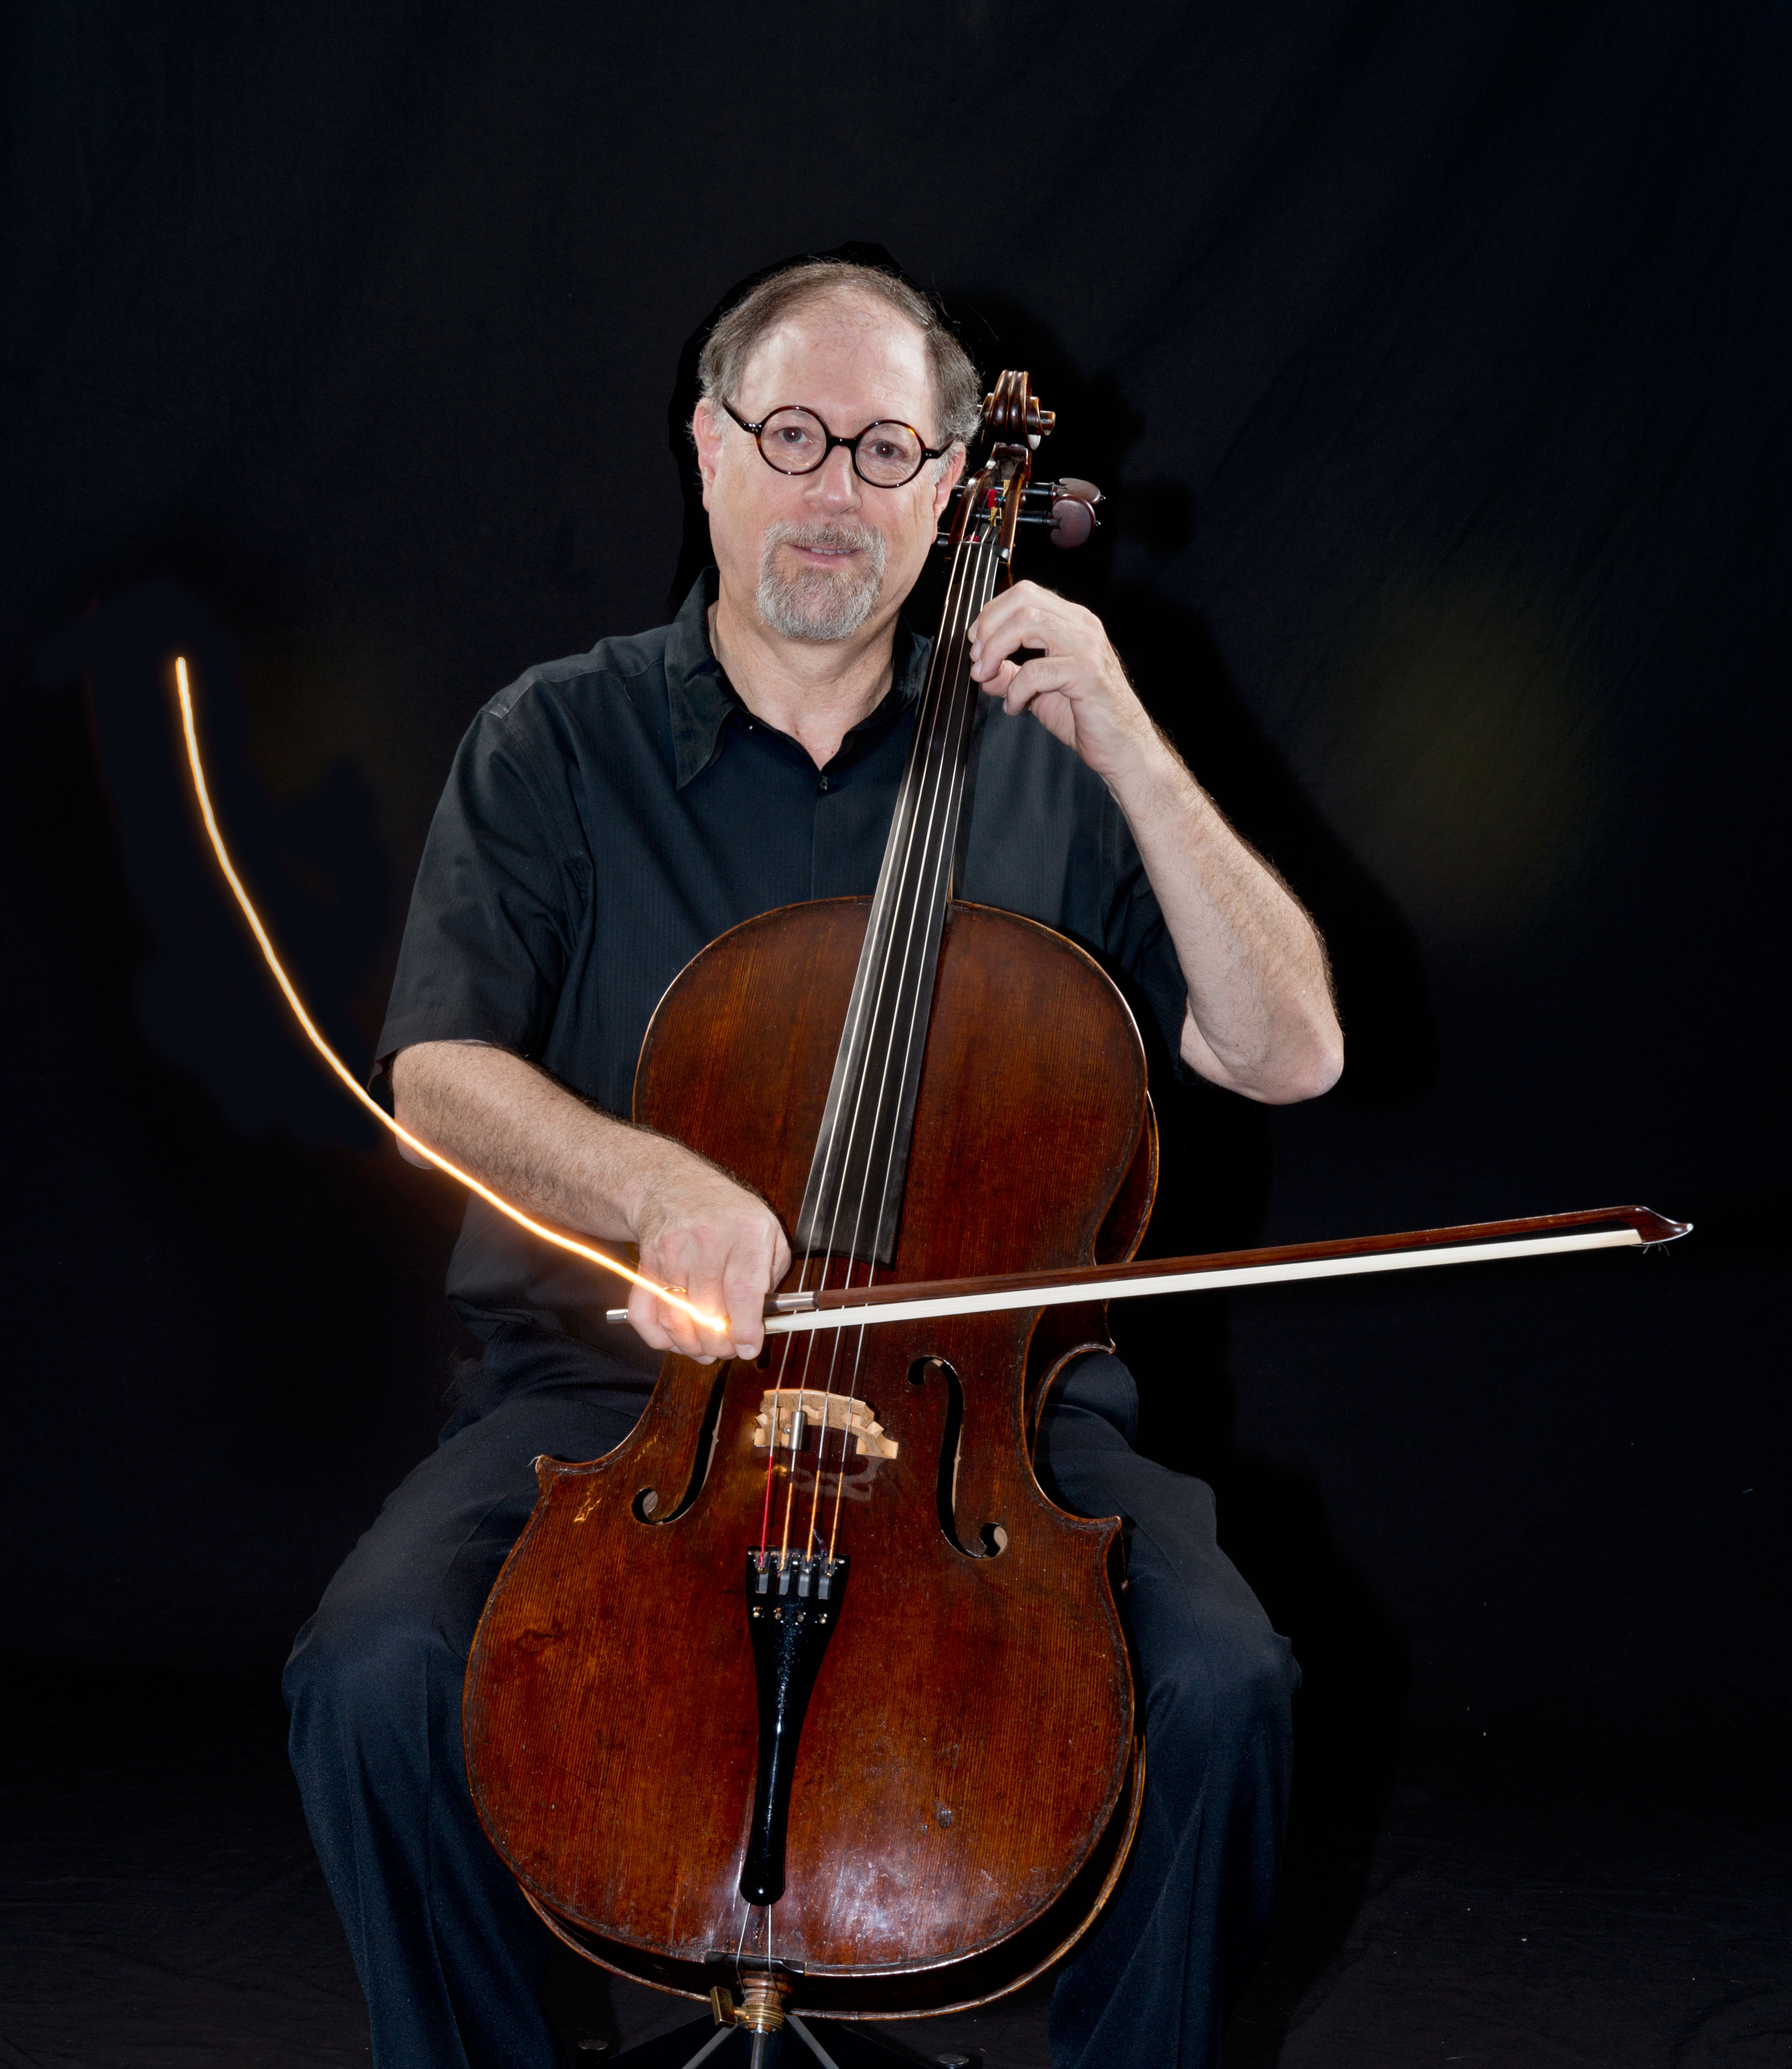 BOB JESSELSON'S CELLO BOWING PROJECT